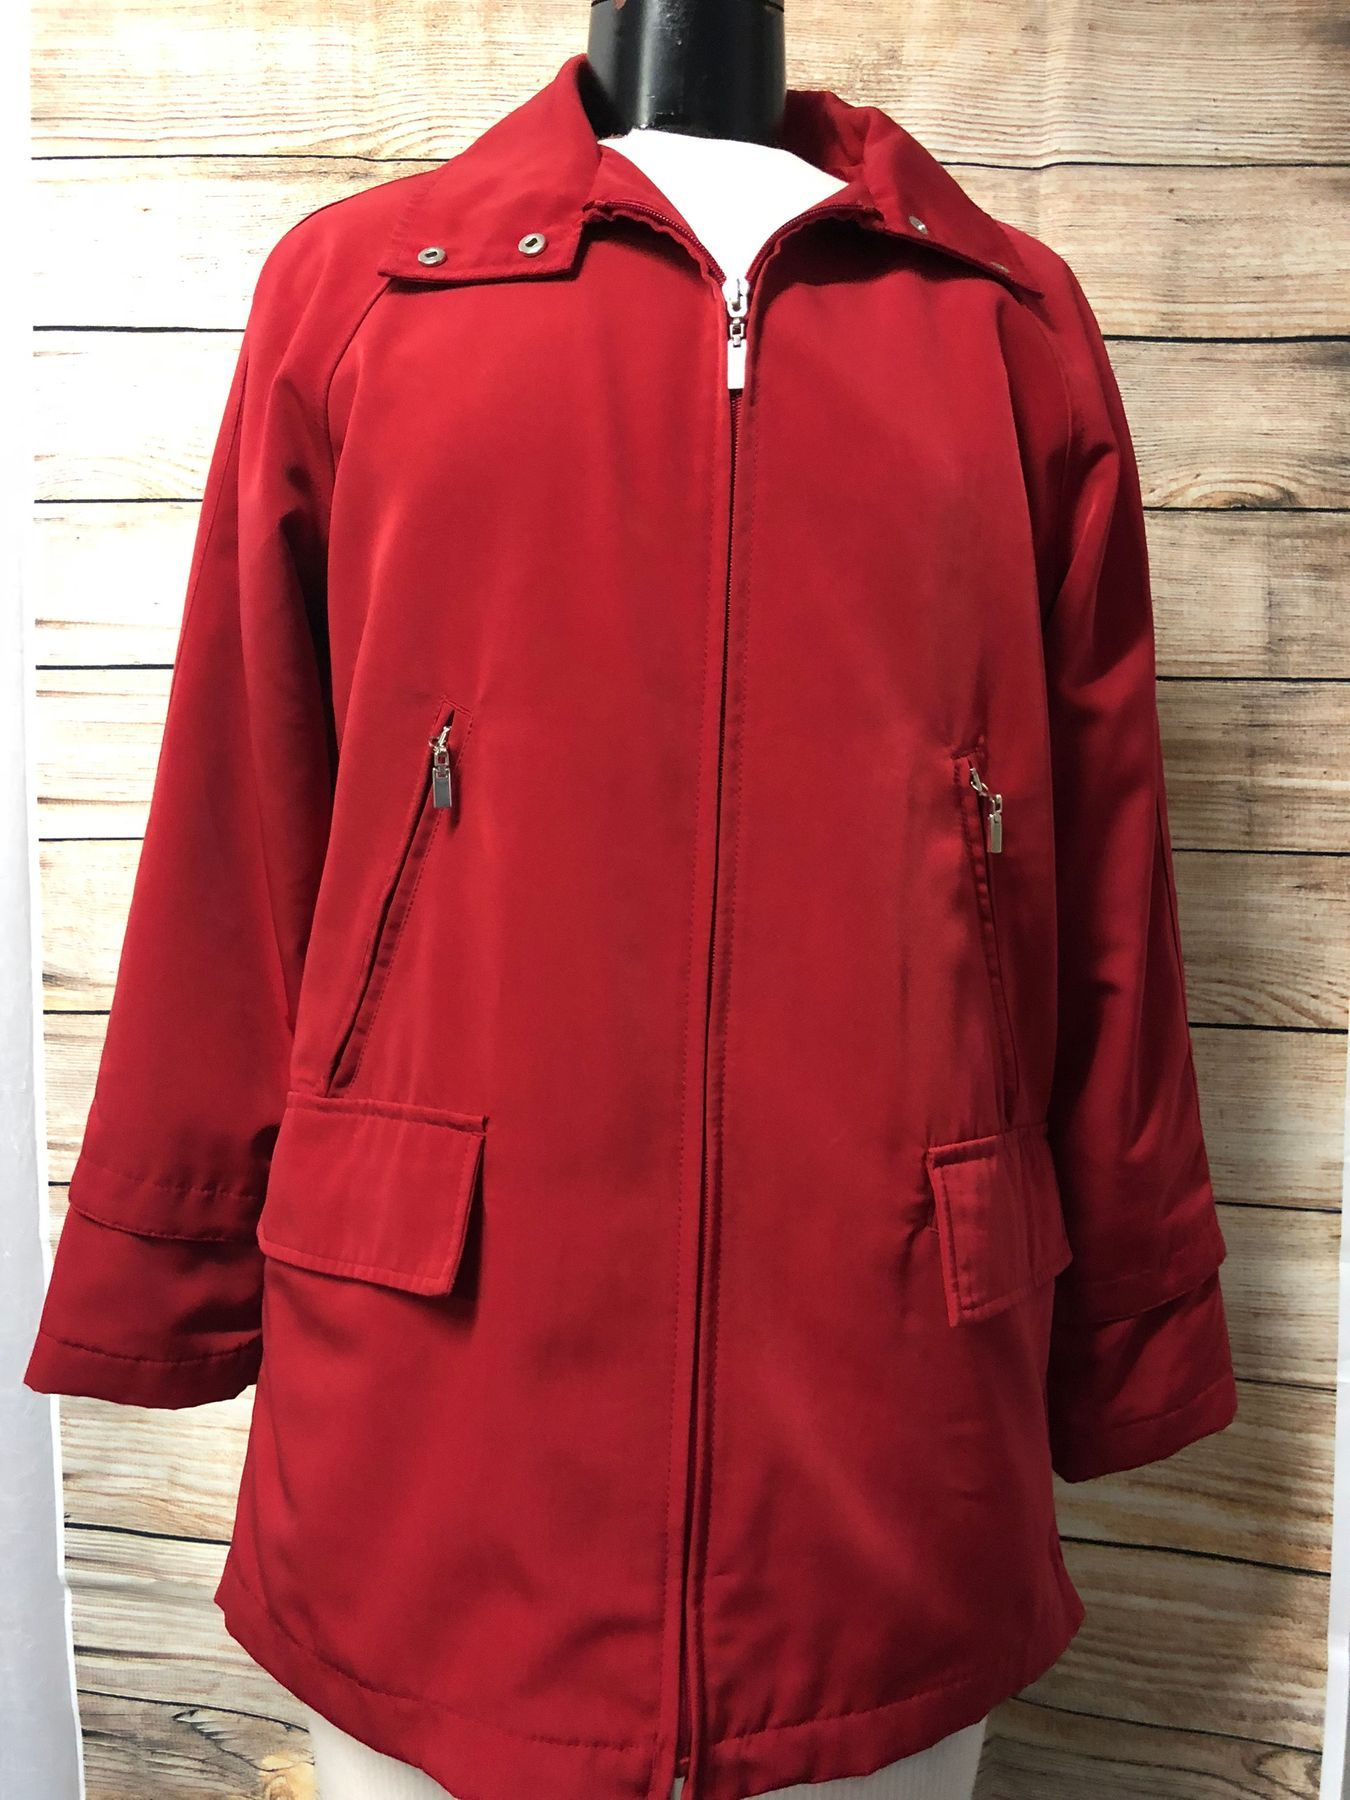 Izzi Outer Wear Women S Red Zipper Front Jacket Size Small Zipper Front Jacket Online Clothing Boutiques Jackets [ 1800 x 1350 Pixel ]